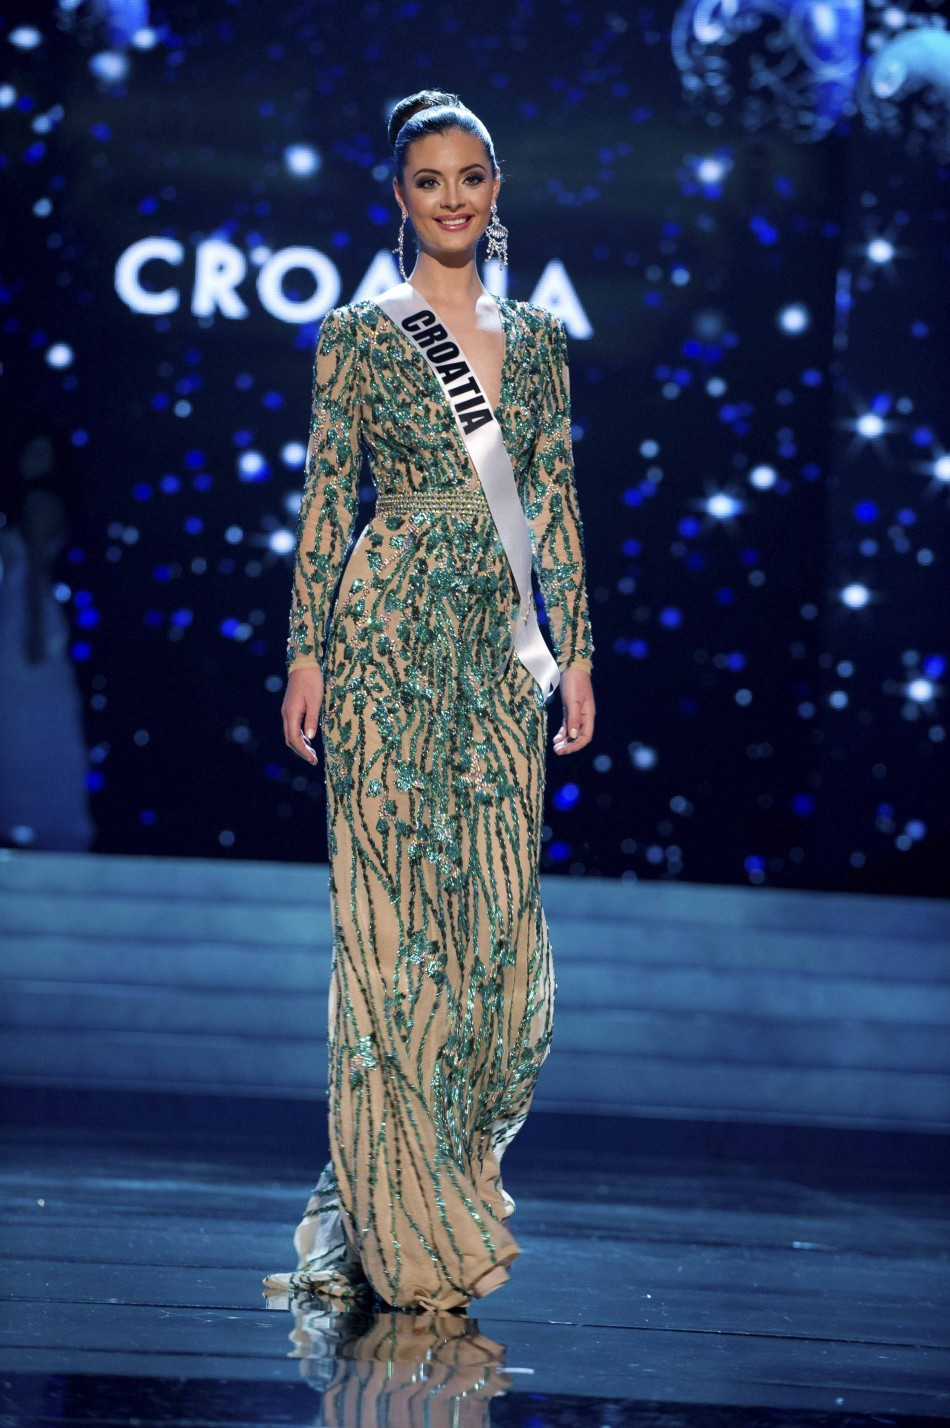 Miss Croatia 2012 Burg competes during the 2012 Miss Universe Presentation Show in Las Vegas